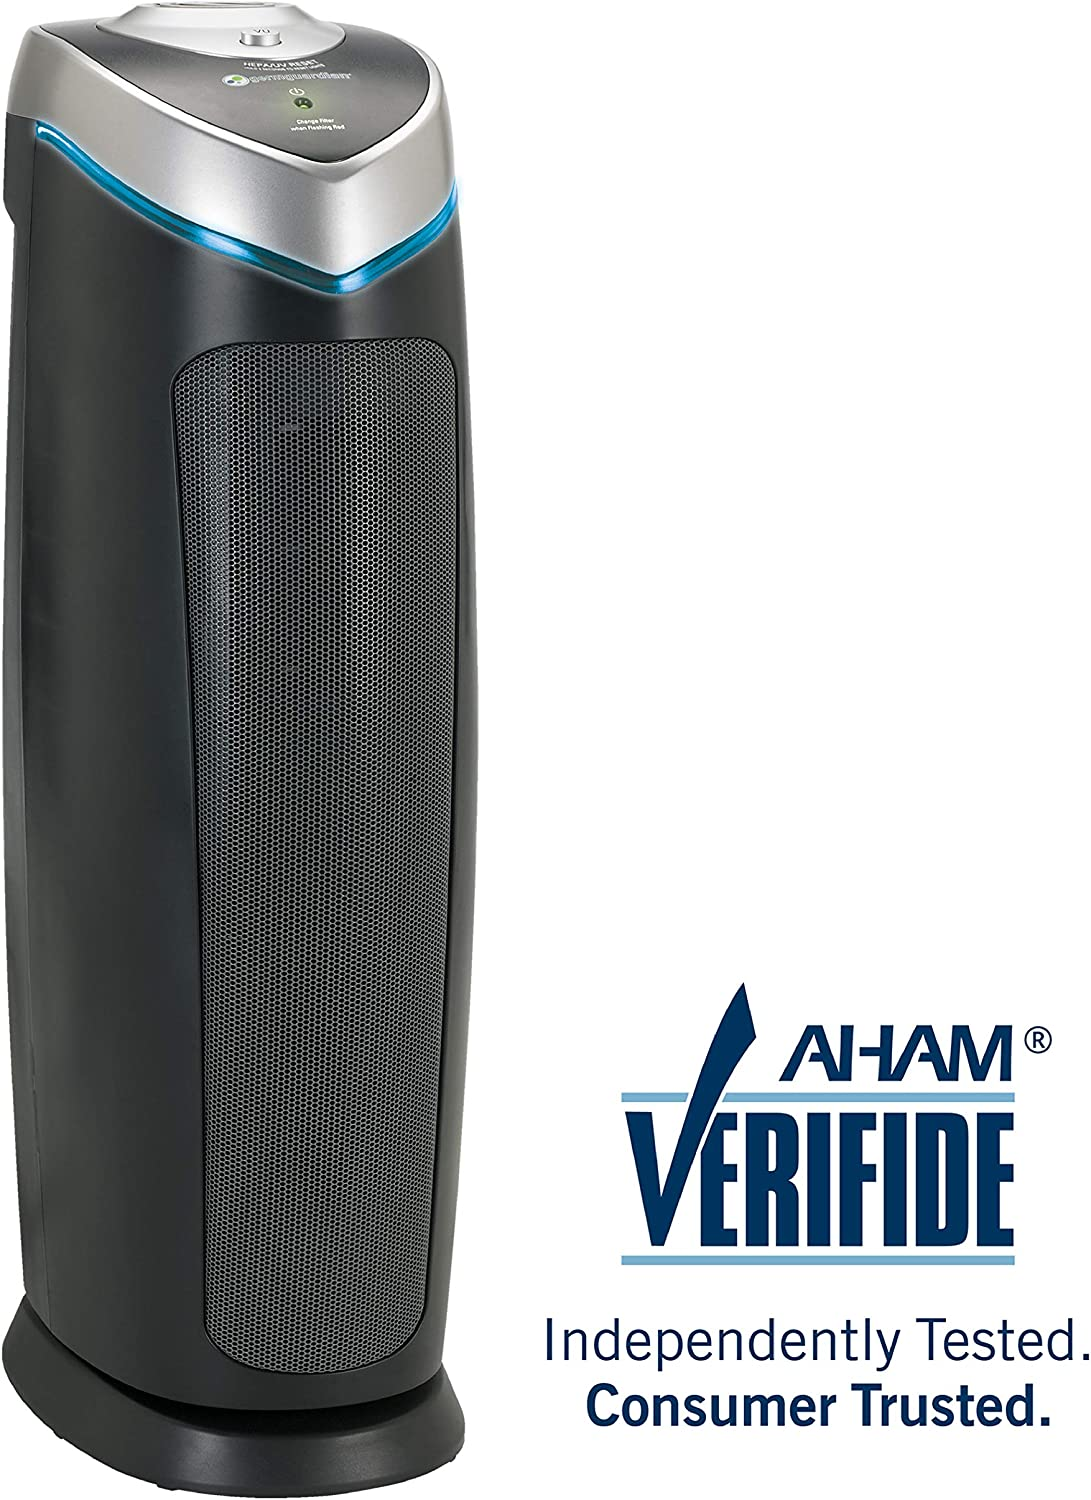 GermGuardian AC4825, 3-in-1 Air Cleaning System with True HEPA, UV-C and Odor Reduction, 22-Inch by Guardian Technologies